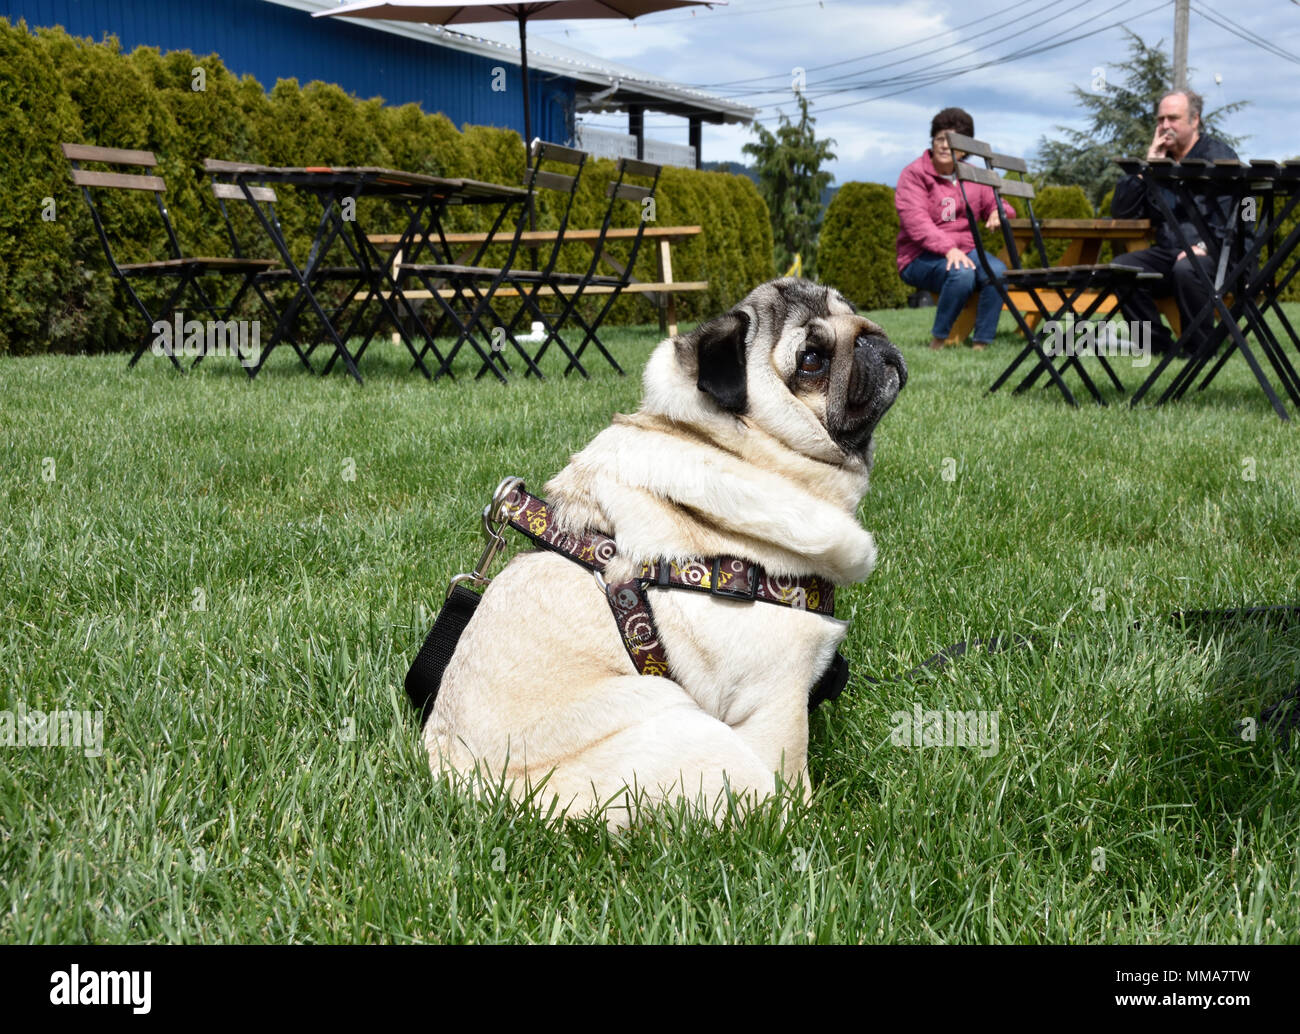 A happy pug concentrates hoping to get a chip from his owner as patrons of an outdoor restaurant look on. - Stock Image